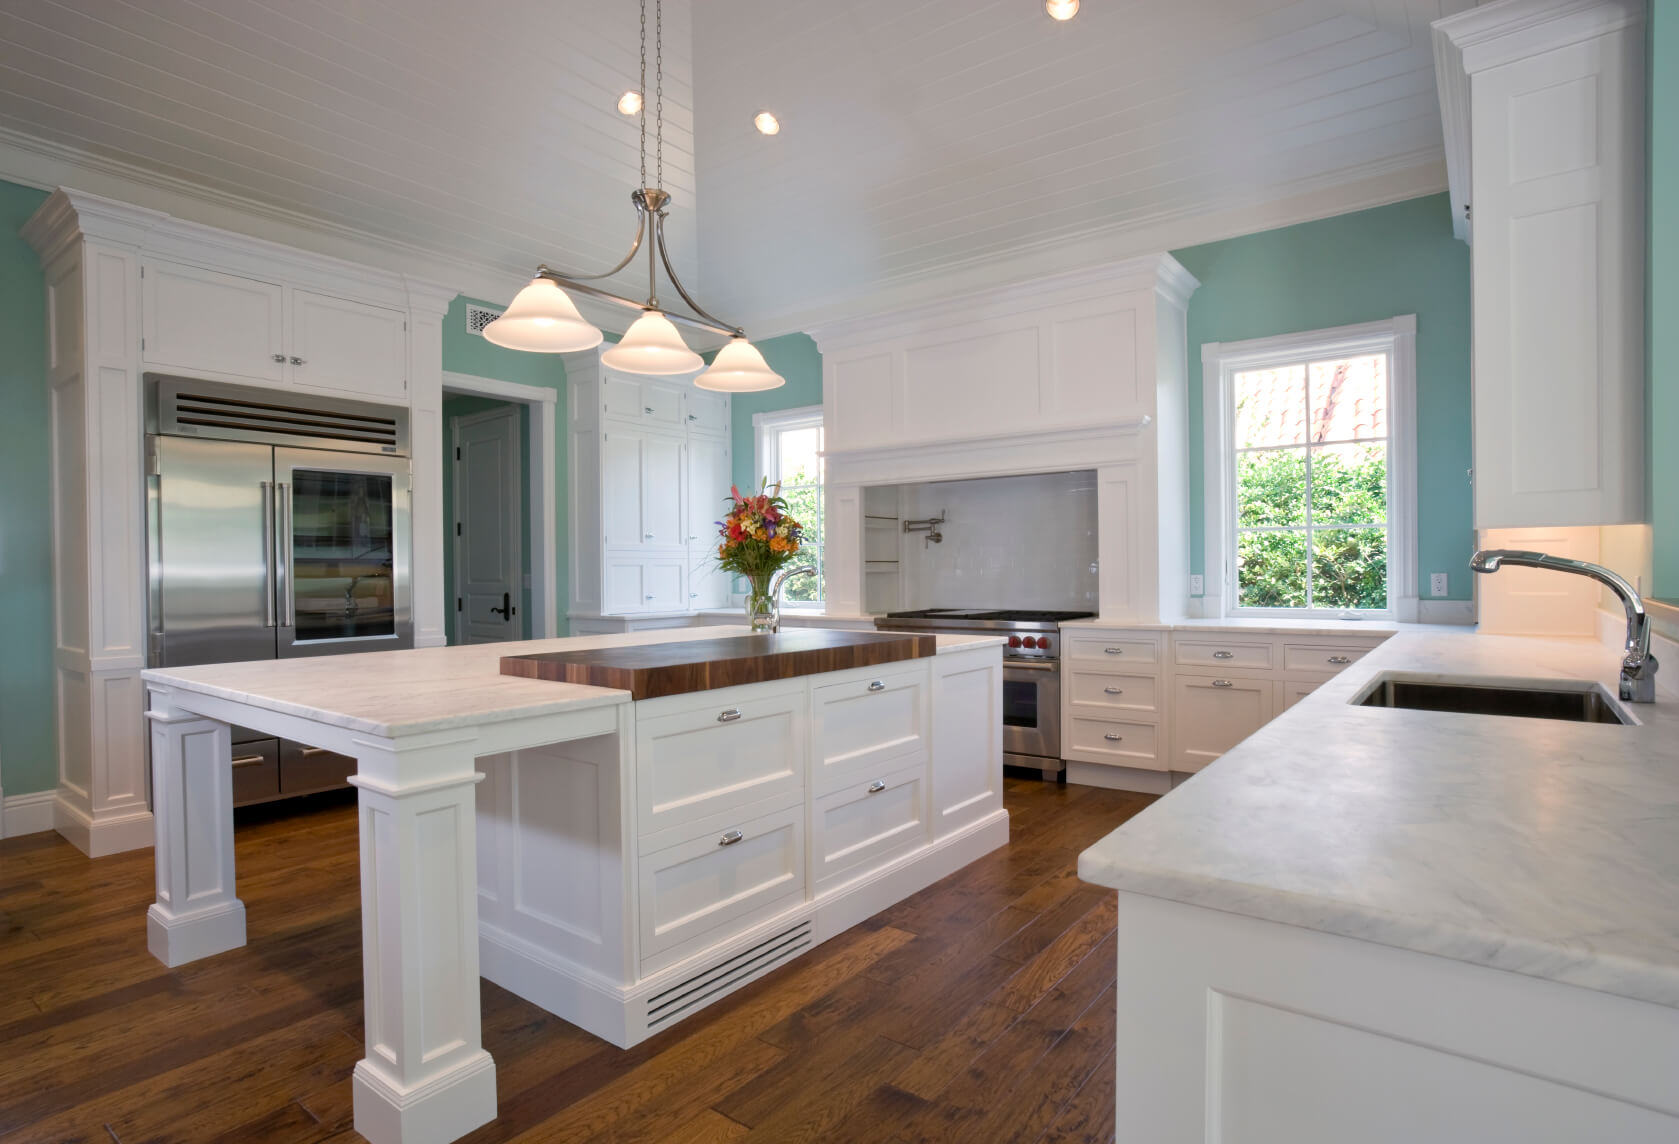 white kitchen designs pictures white kitchen dark floors Light mint blue paint adds burst of color to this all white kitchen over natural